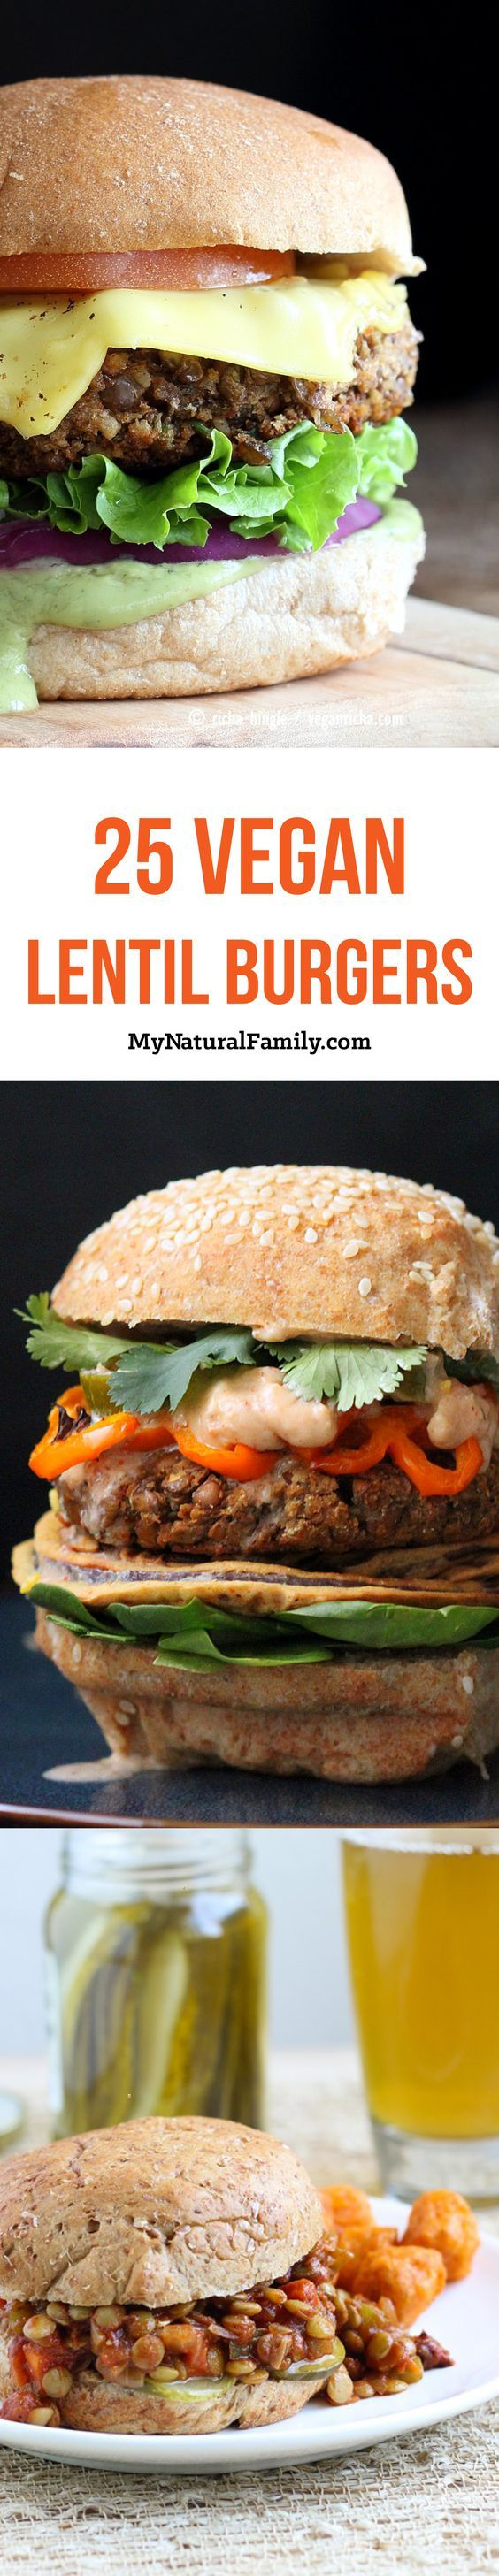 25 of the Best Vegan Lentil Burger Recipes